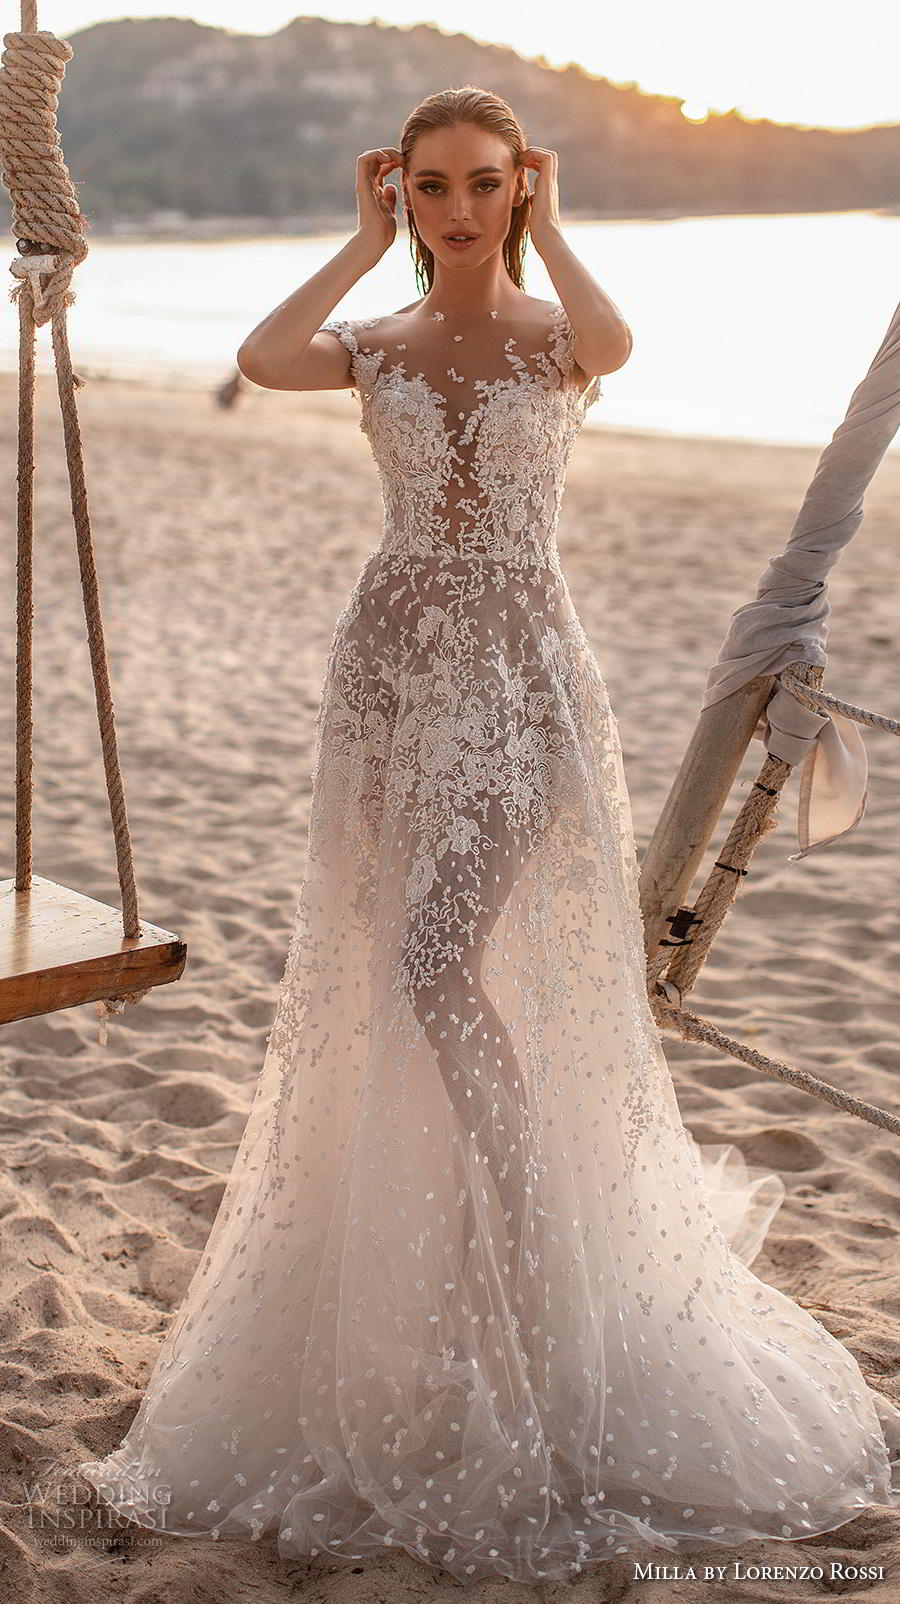 lorenzo rossi 2019 milla bridal cap sleeves illusion jewel sweetheart neckline full embellishment romantic soft a  line wedding dress backless v back chapel train (18) mv